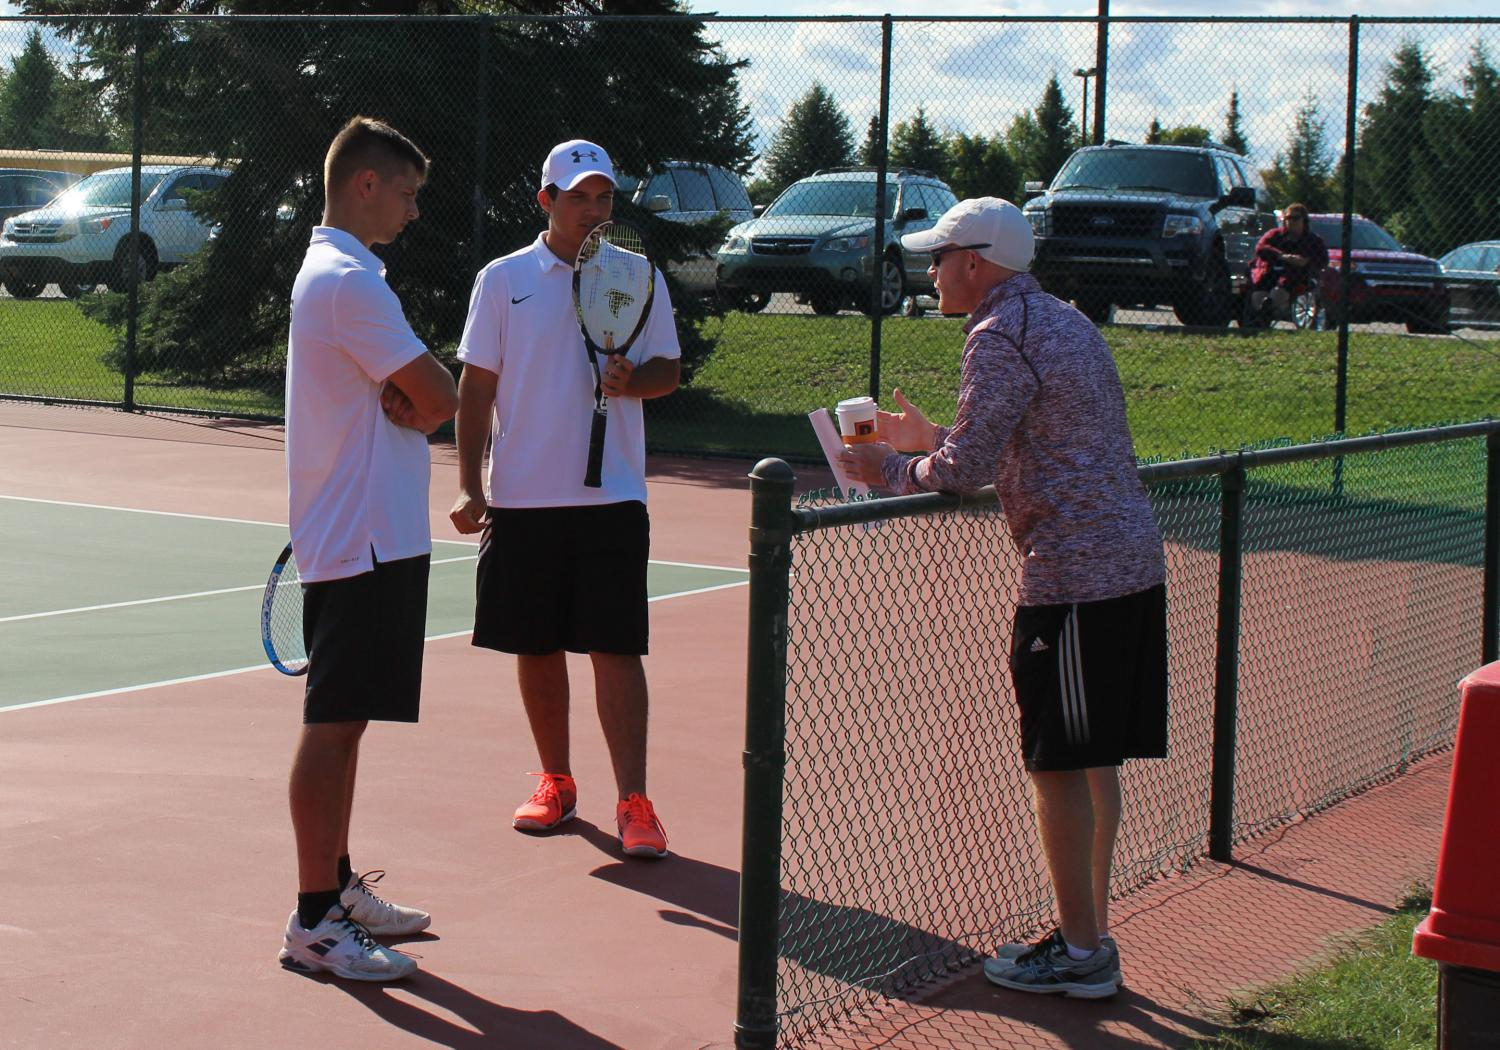 Coach Stephen Nellis does some last minute coaching to help senior Zachary Yurconis and junior Jacob Giardina prepare for their upcoming match.